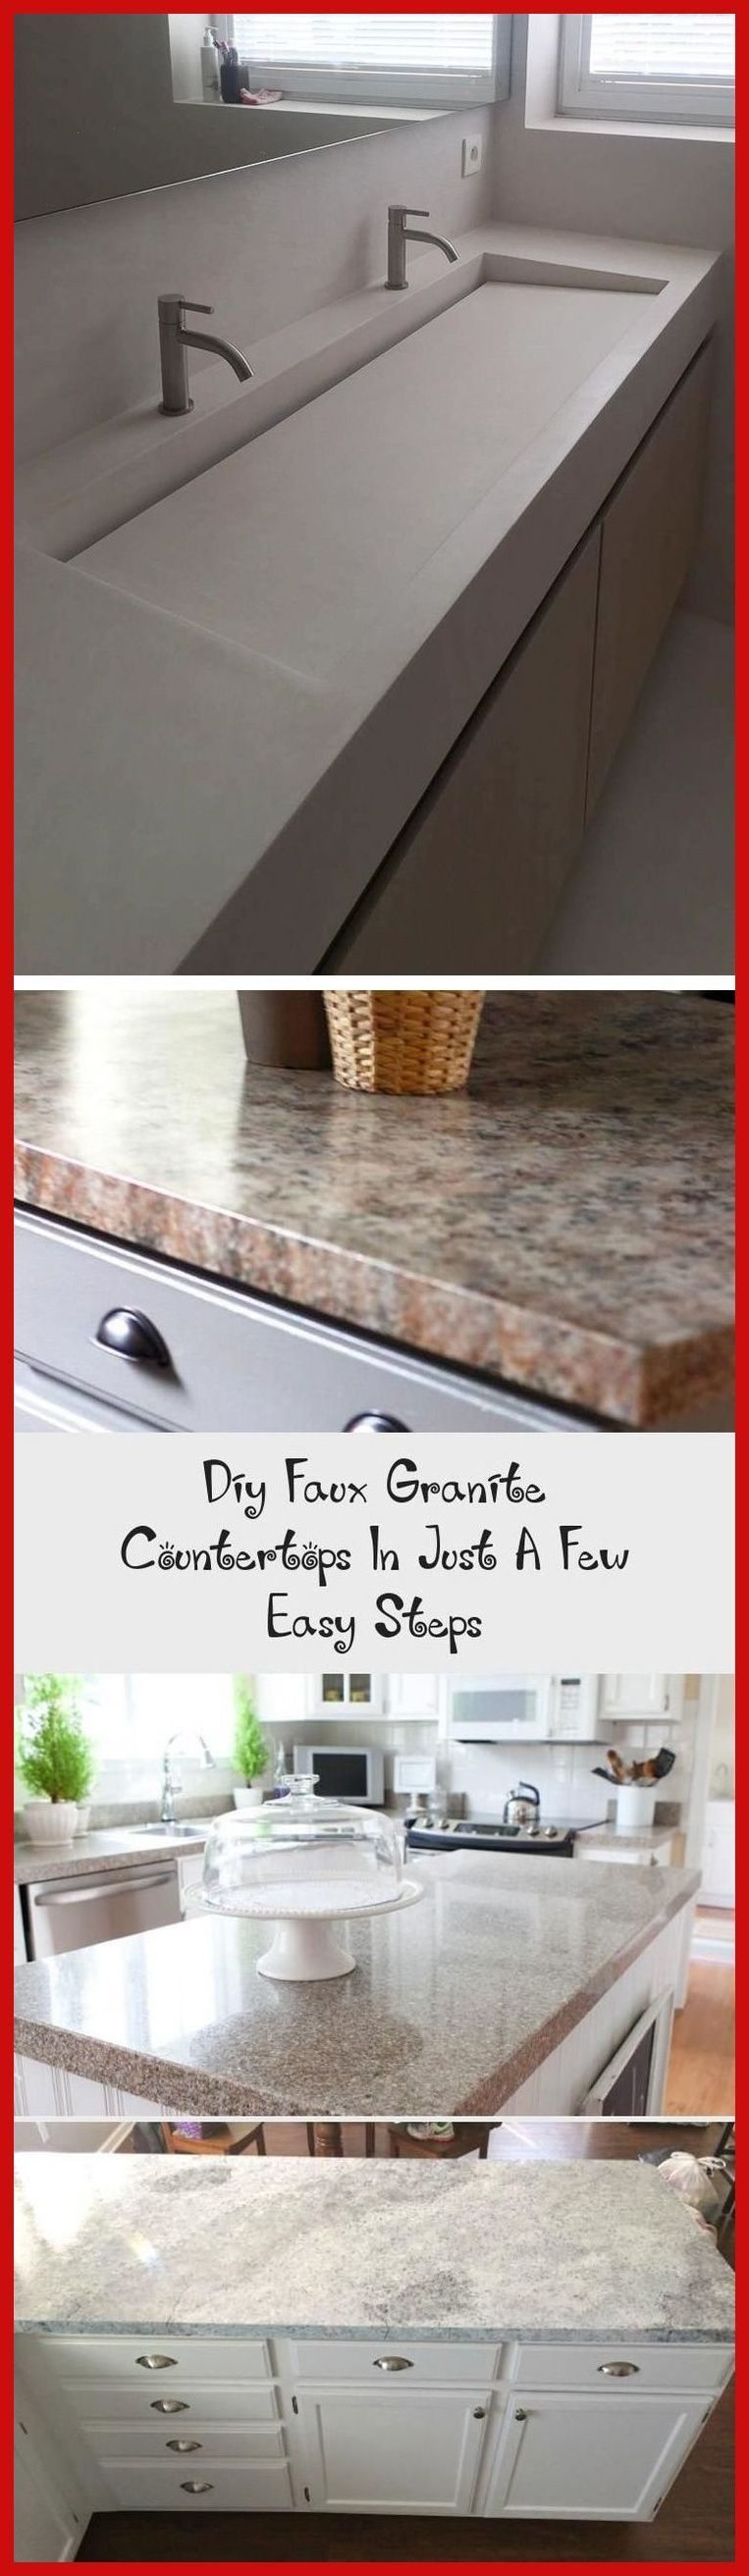 Pin On Granite Countertops